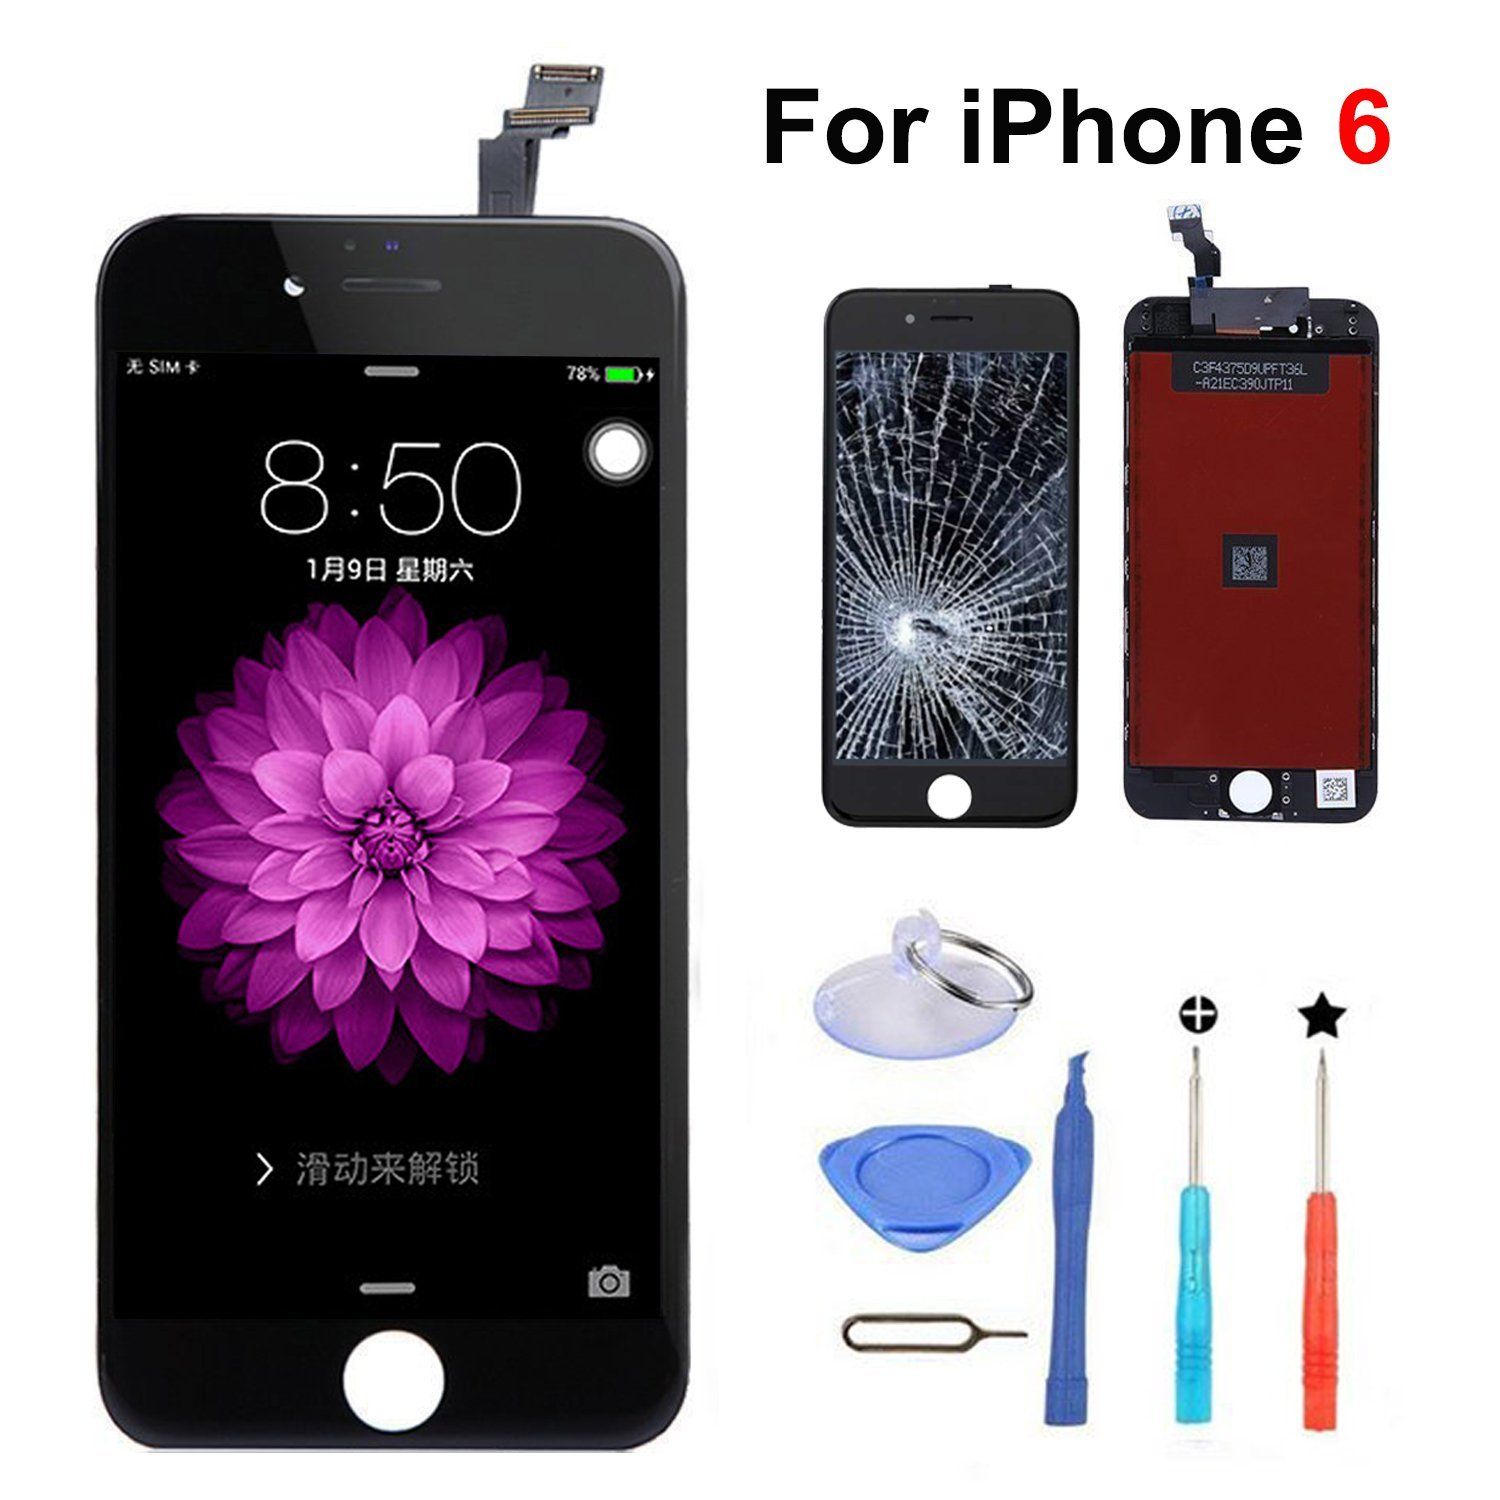 "iPhone 6 4.7"" LCD Screen Replacement Touch Screen & Digitizer with Free Tools kit (Black)"